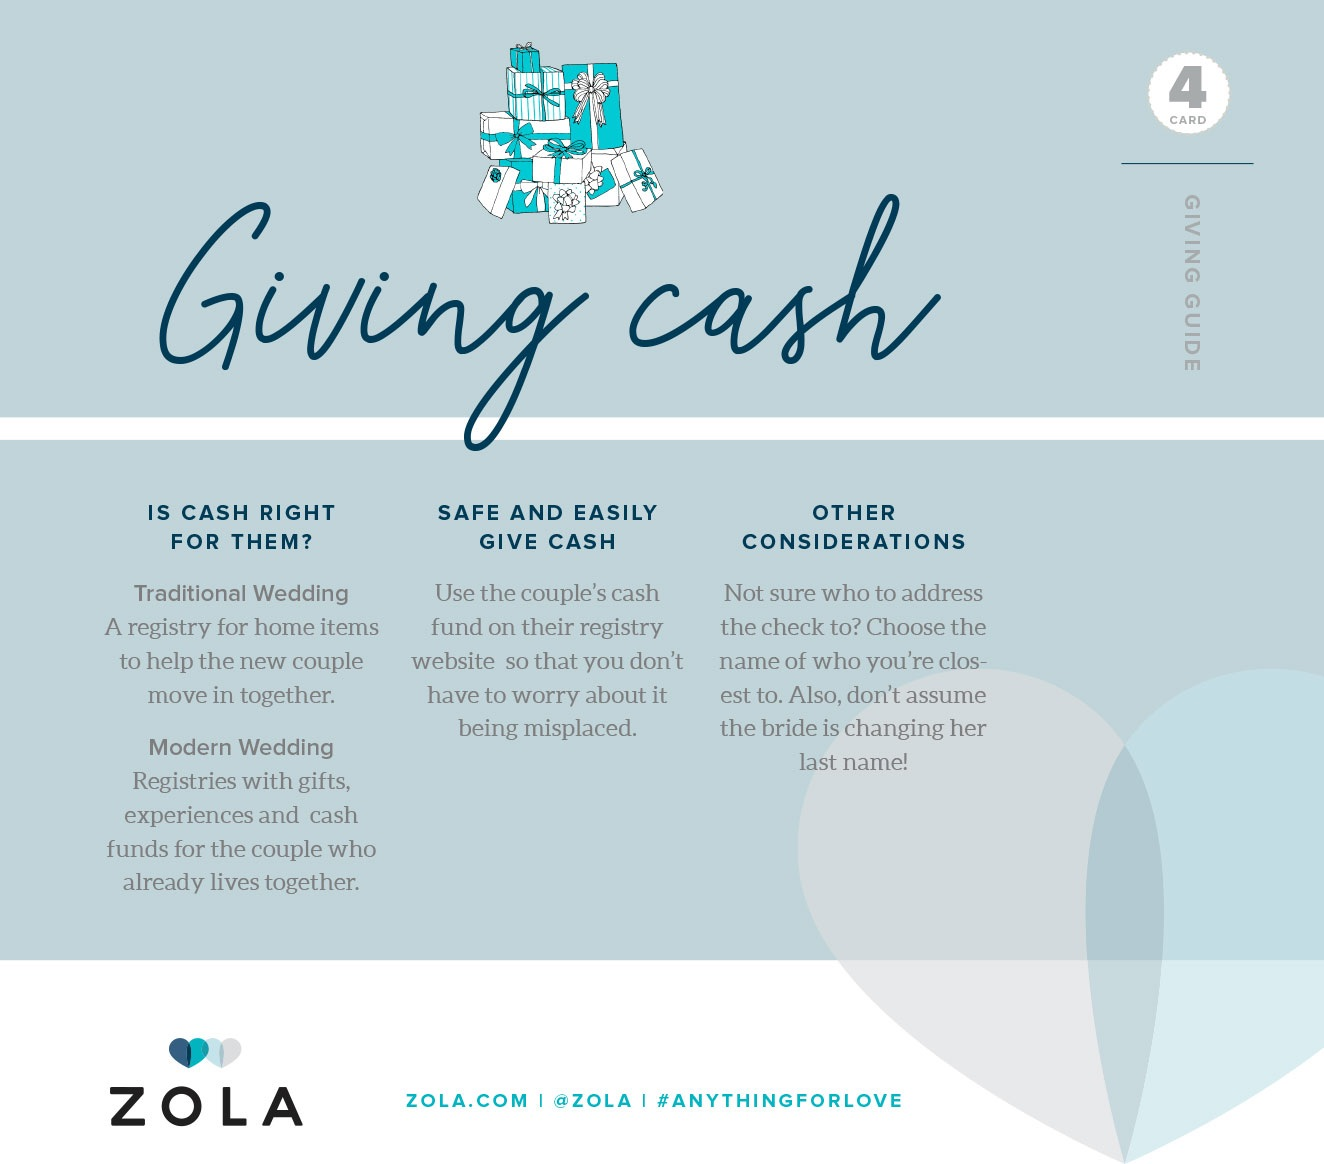 Zola Card 4 - Giving Cash